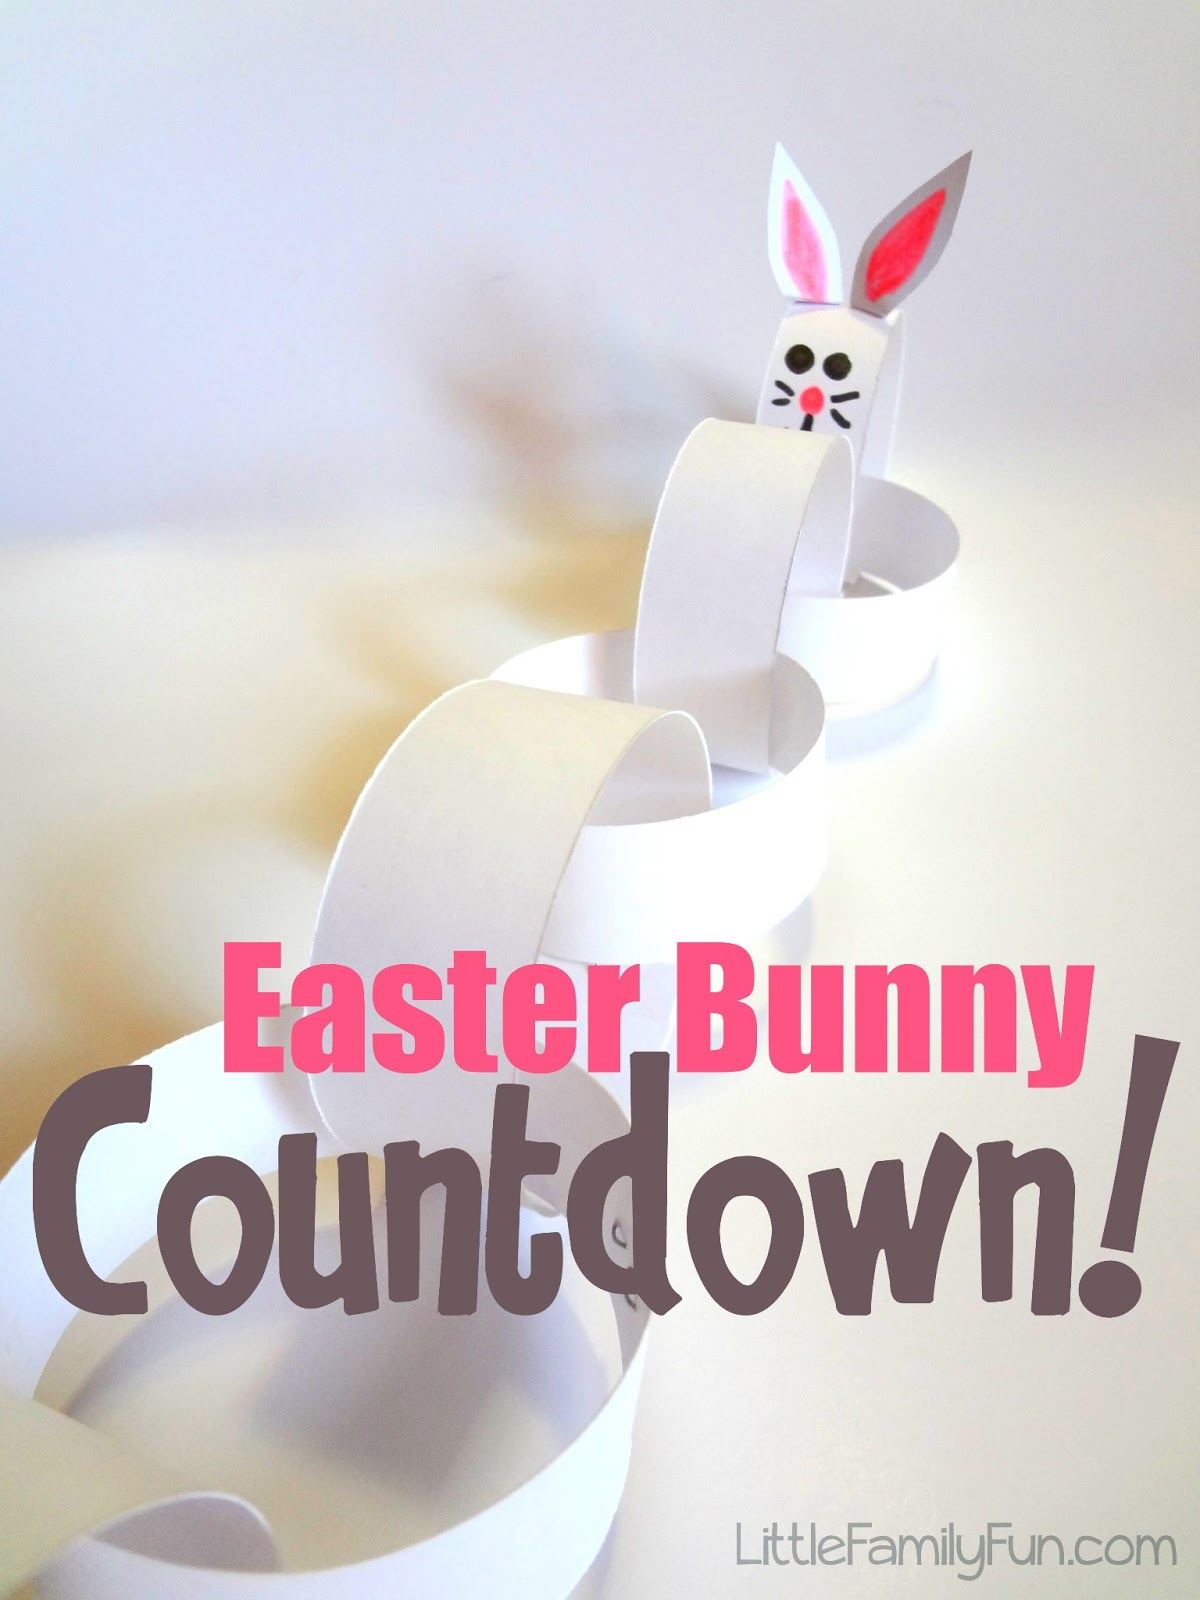 Little Family Fun Easter Bunny Countdown